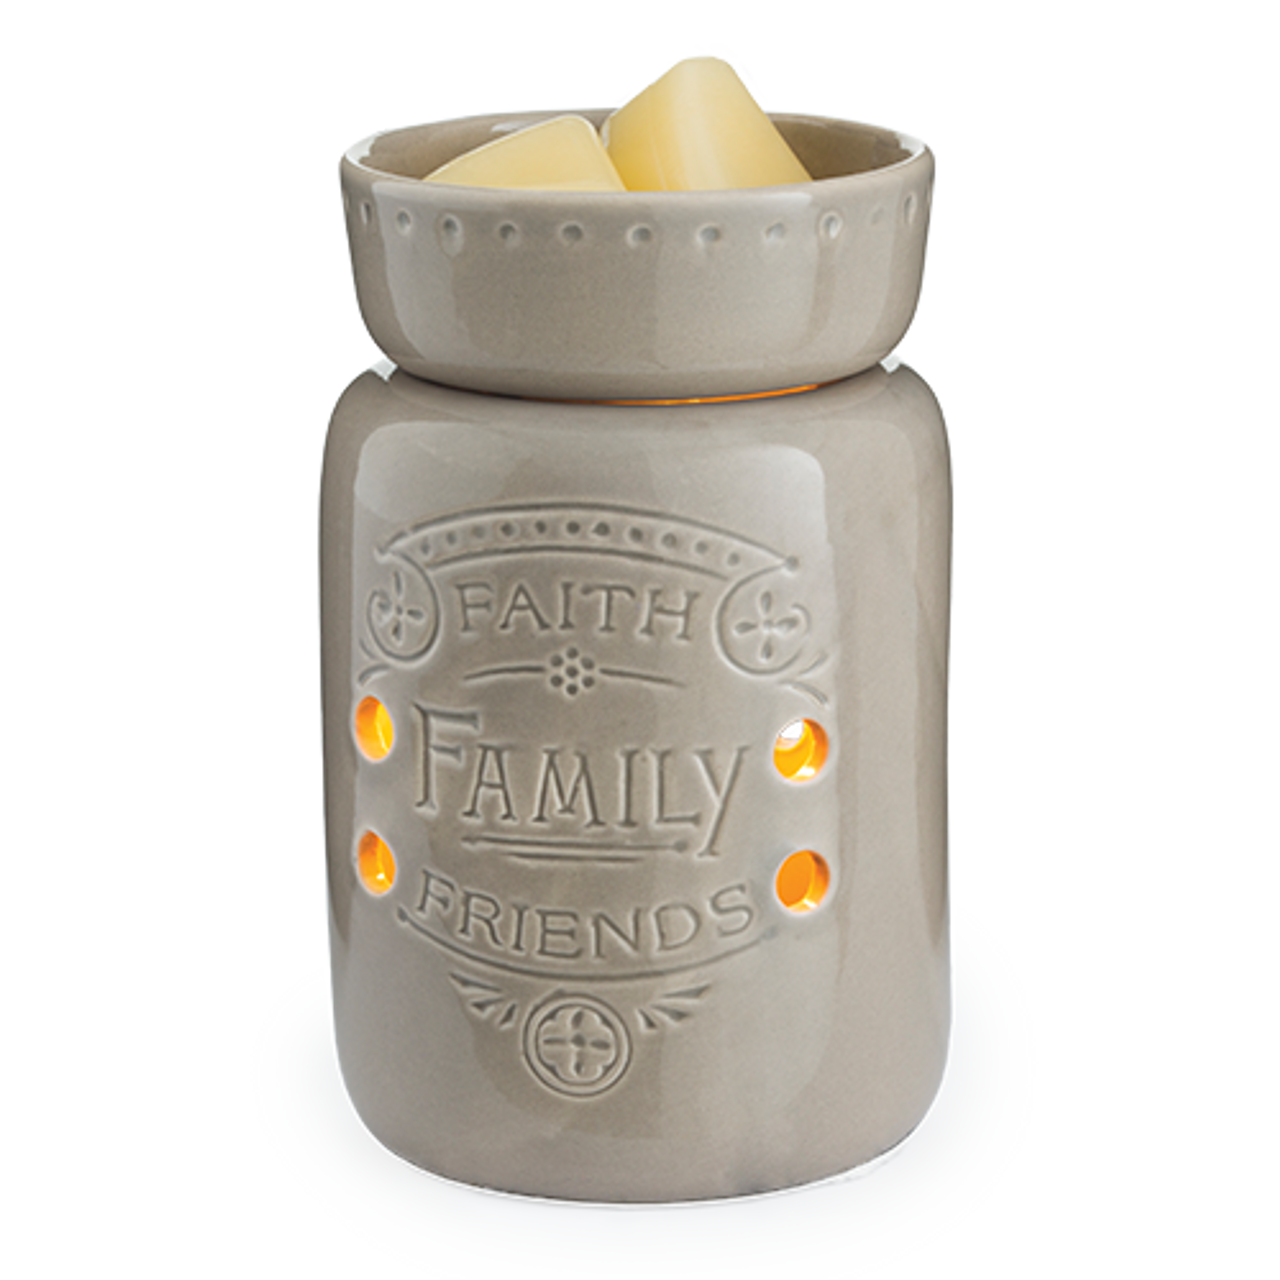 Wax Melter Faith Family Friends Illumination Terra Vela It endeavors to provide the products that you want, offering the best bang for your buck. wax melter faith family friends illumination